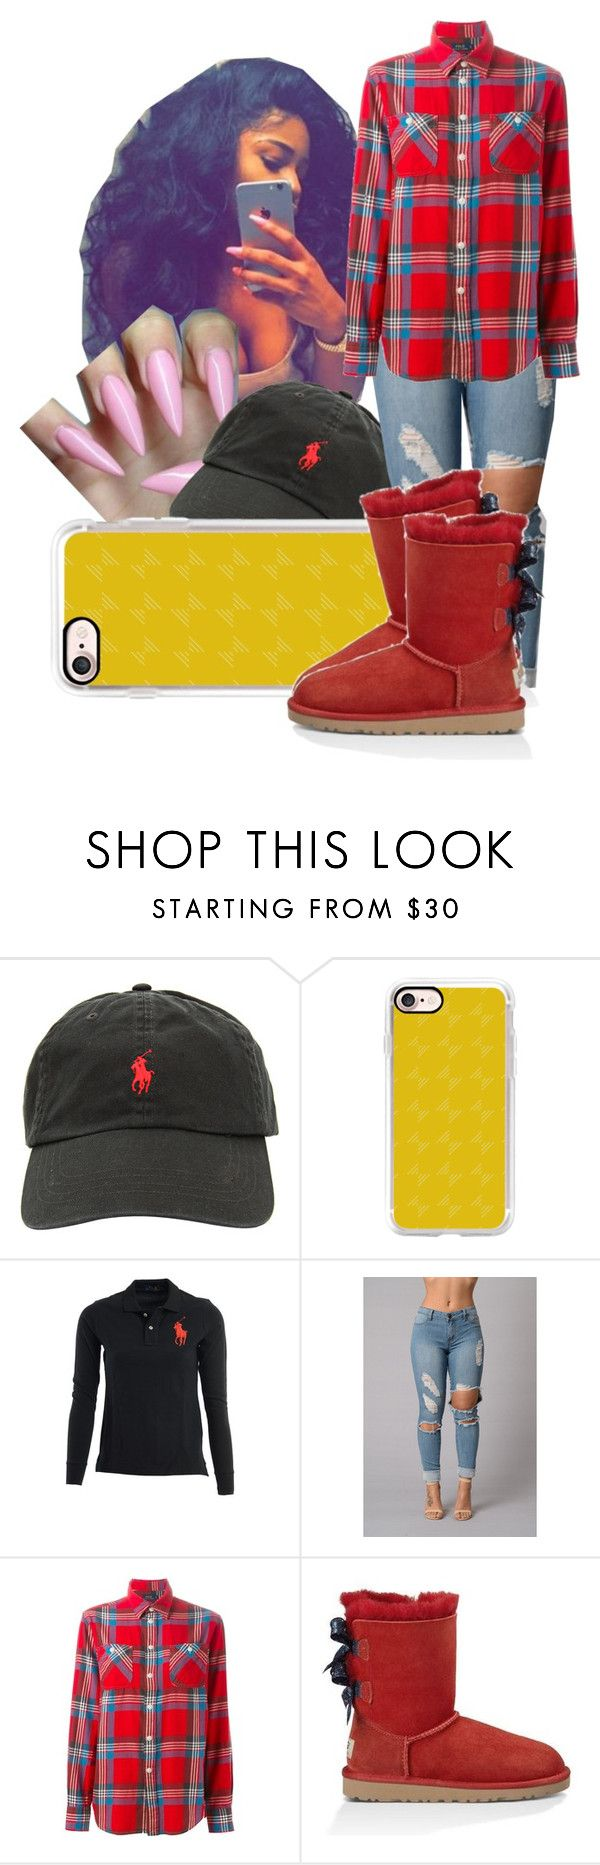 """Day with Bae Tomorrow ‼️"" by shamyadanyel ❤ liked on Polyvore featuring Ralph Lauren, Casetify, Polo Ralph Lauren and UGG Australia"